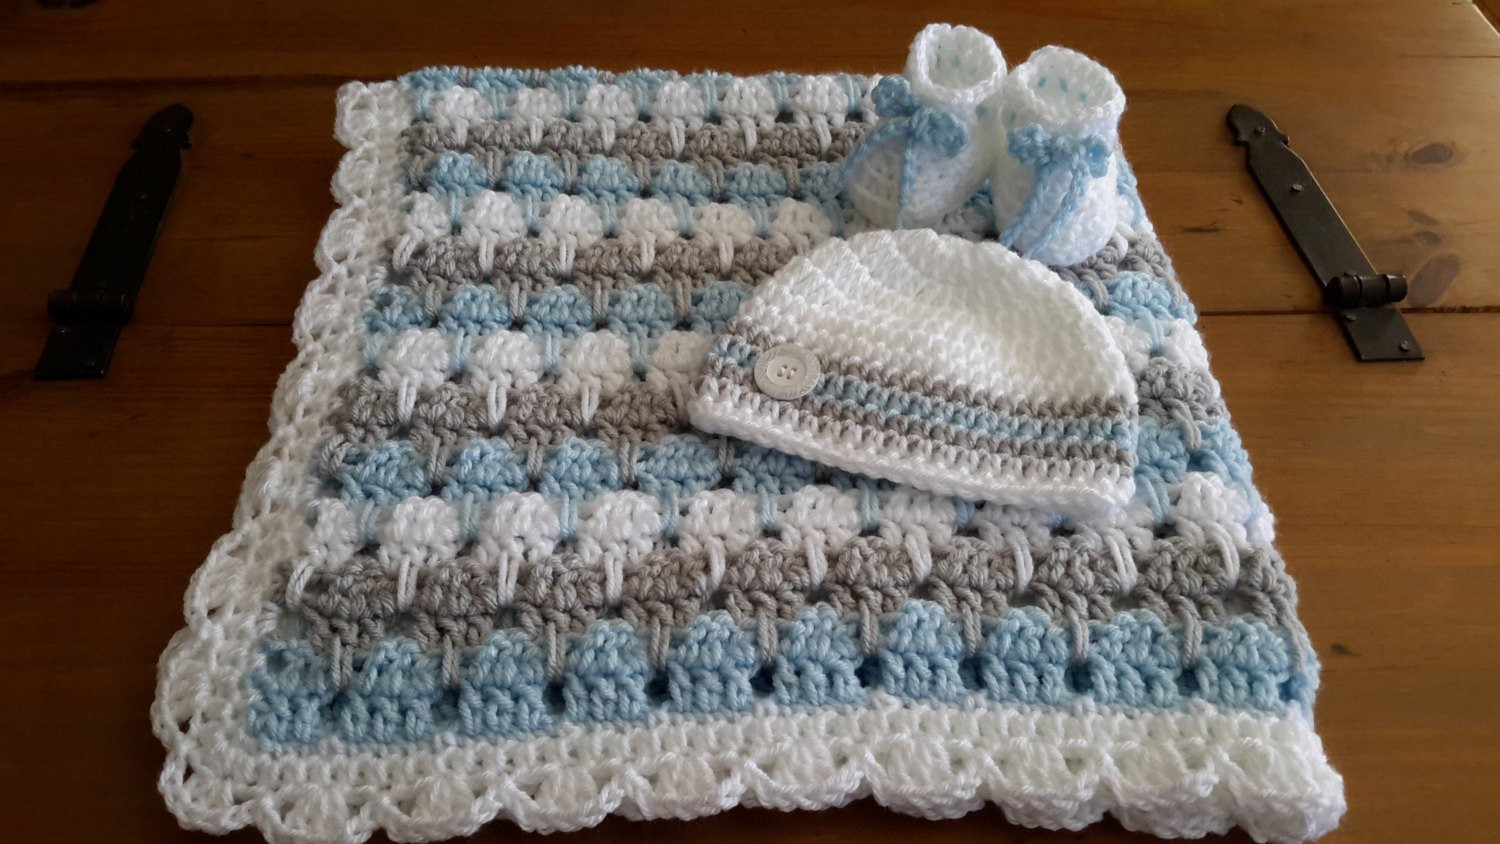 Baby Boy Crochet Blanket Patterns Lovely Baby Boy Blanket Crochet Stripe Crochet Blanket Afghan Of Baby Boy Crochet Blanket Patterns New Free Baby Boy Crochet Blanket Patterns